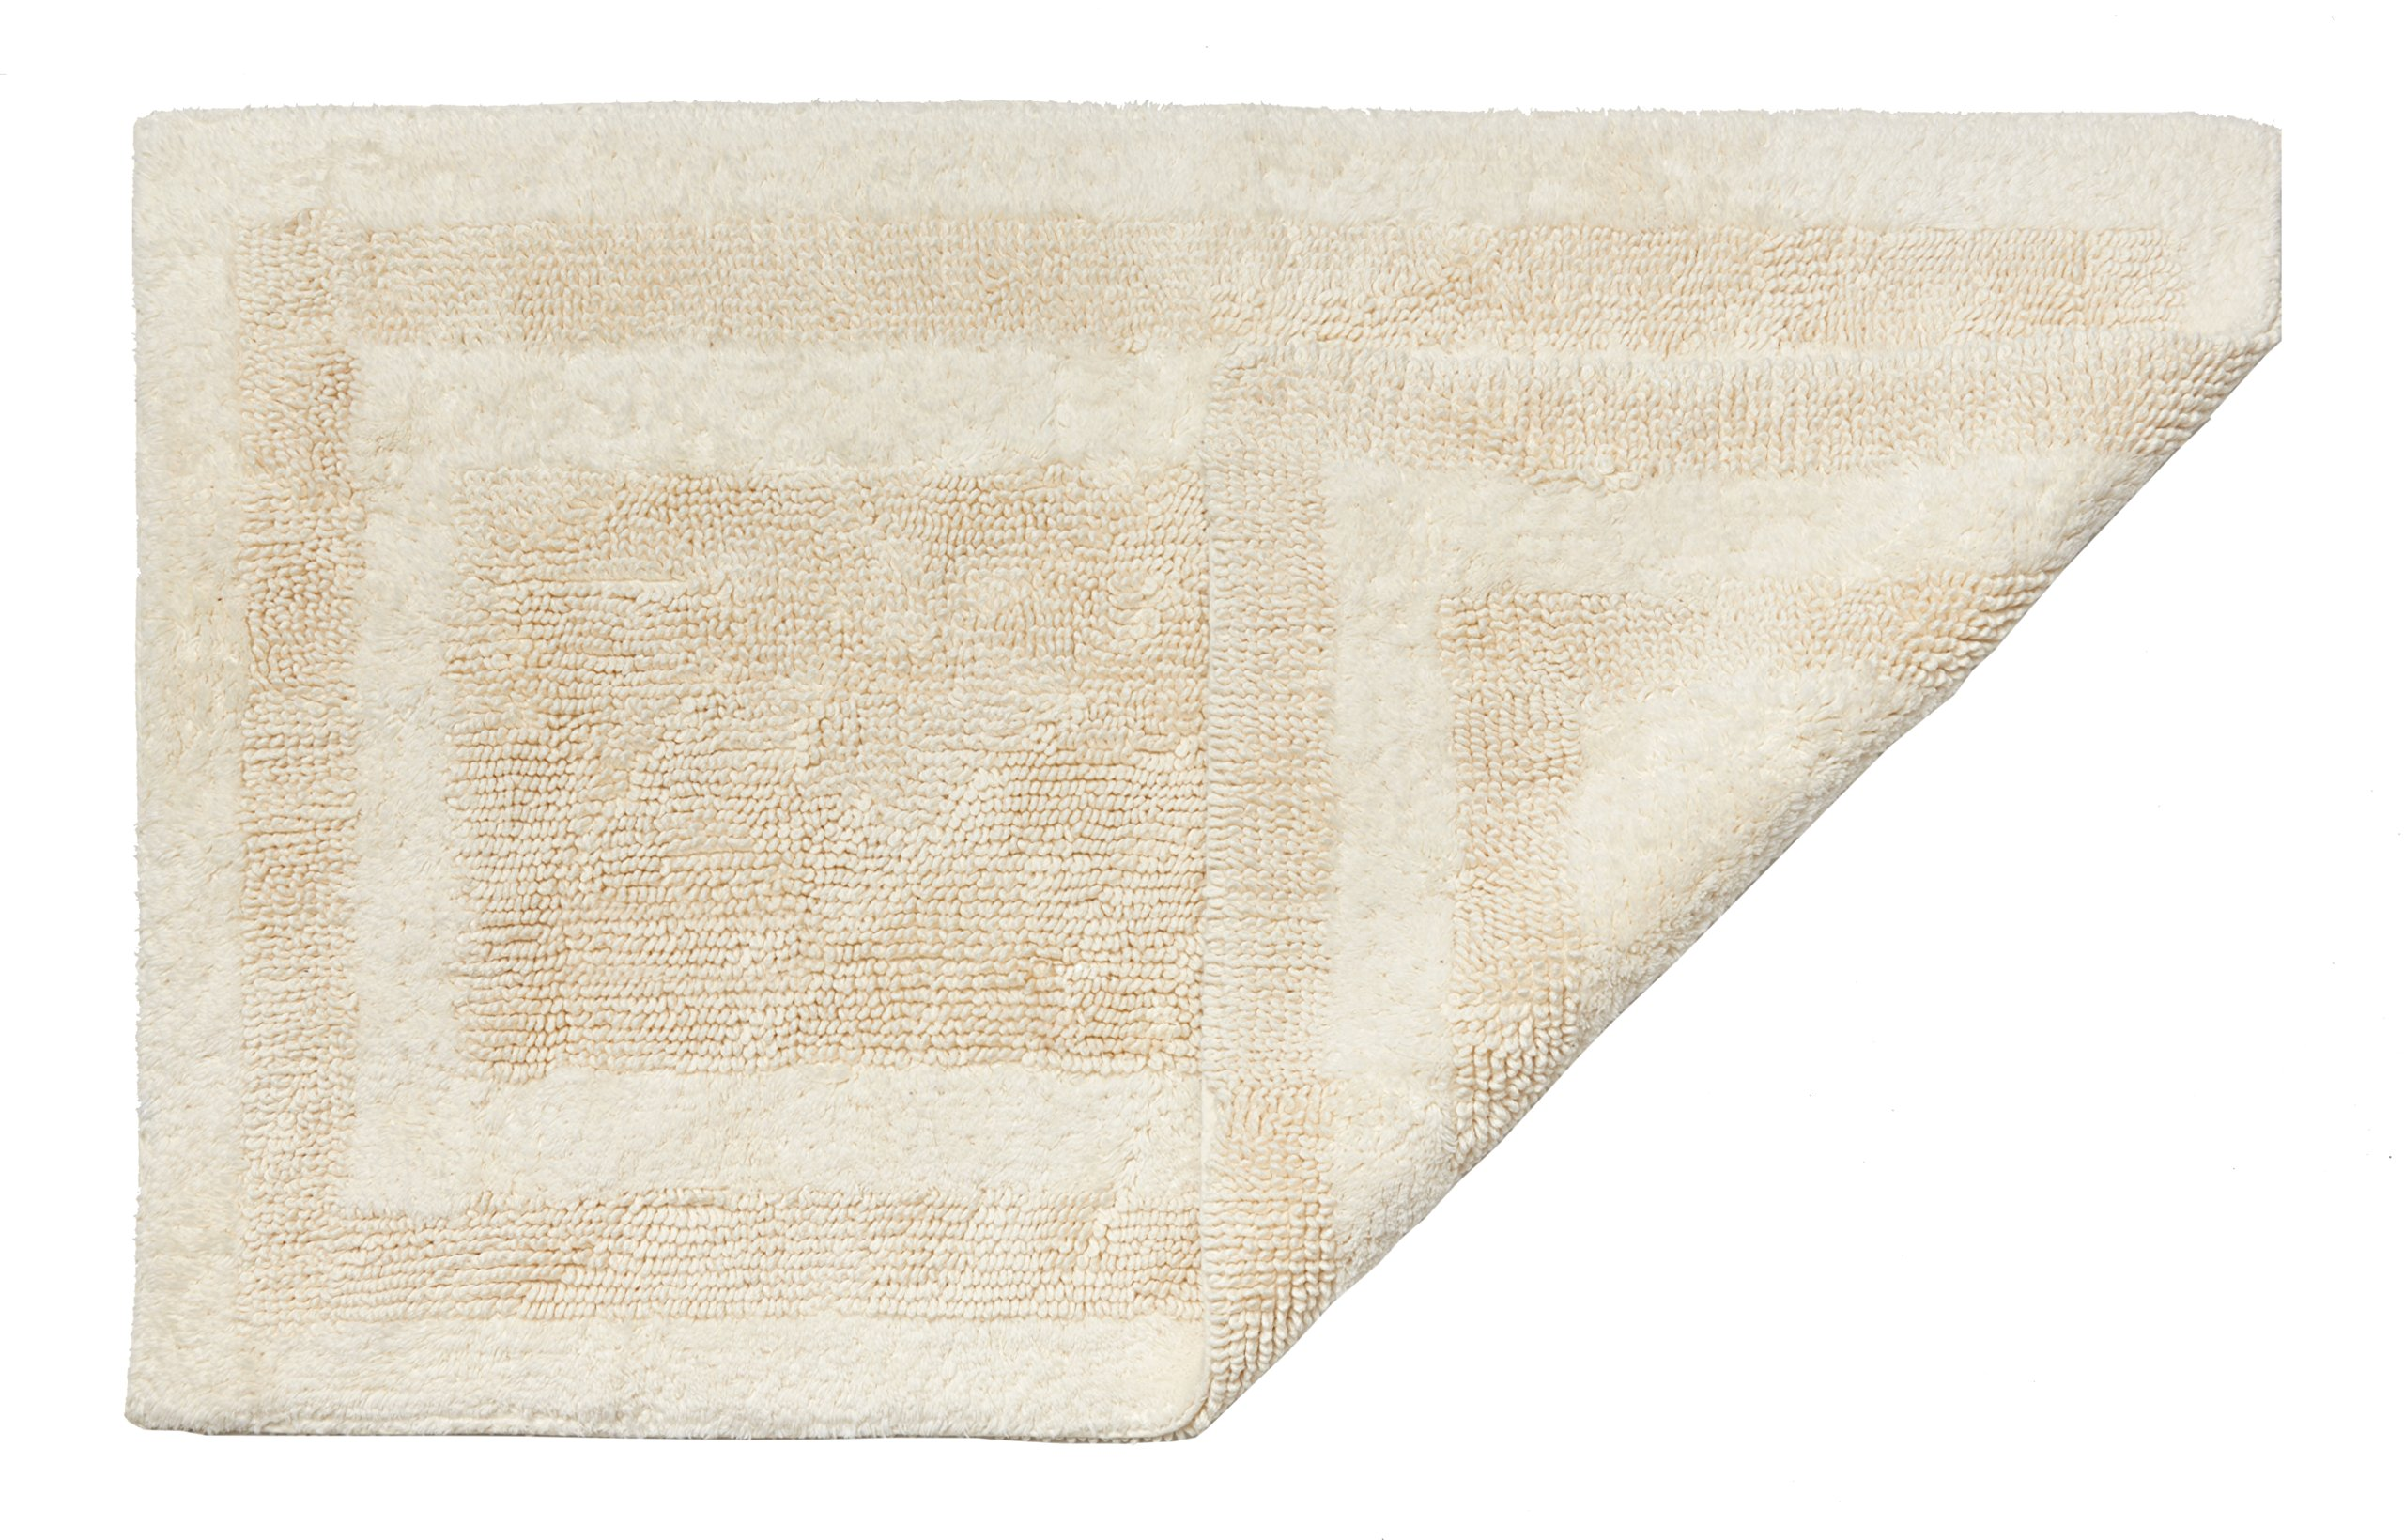 HygroSoft Reversible Fast Drying and Absorbent Bath Rug, 30 by 48-Inch, Vanilla